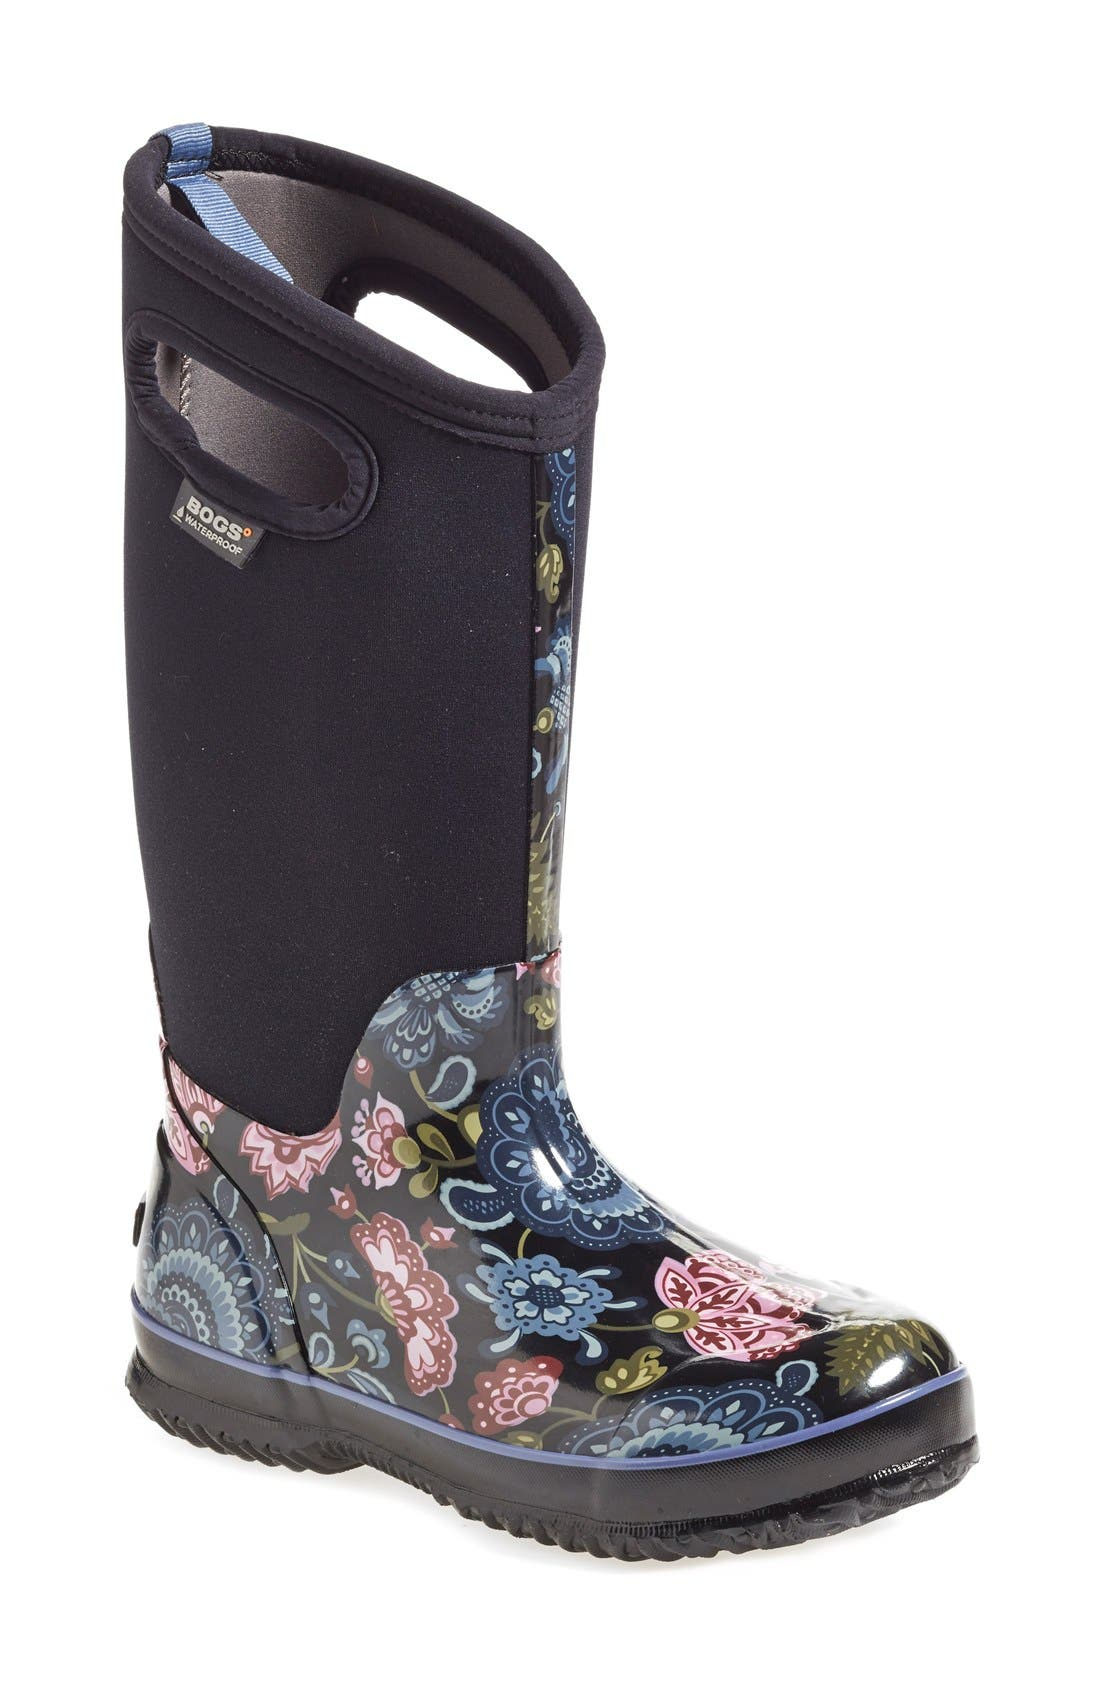 Main Image - Bogs 'Classic Winter Blooms' Tall Waterproof Snow Boot with  Cutout Handles